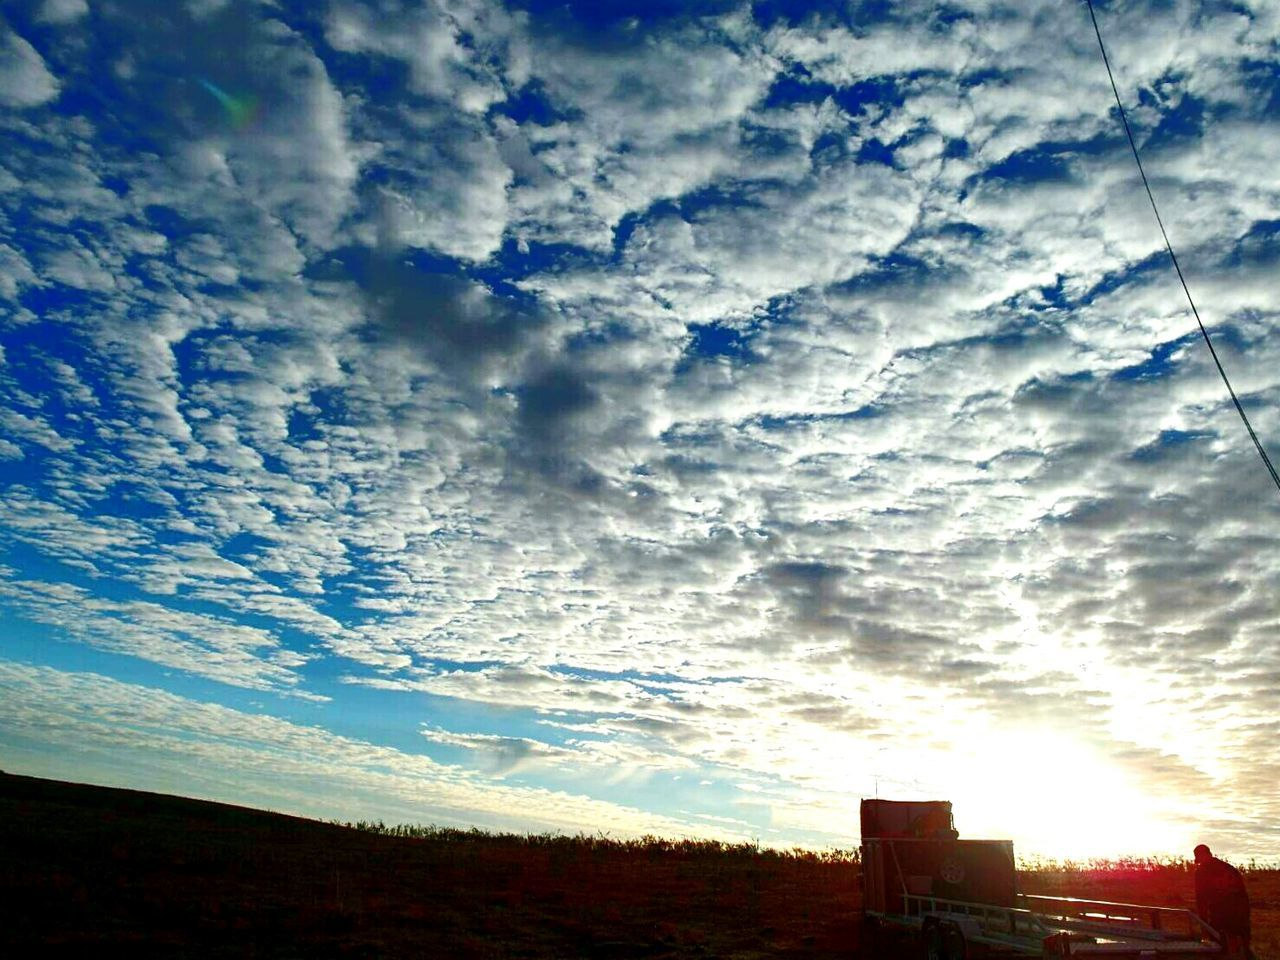 cloud - sky, sky, nature, dramatic sky, no people, beauty in nature, outdoors, scenics, built structure, silhouette, tranquility, building exterior, architecture, sunset, day